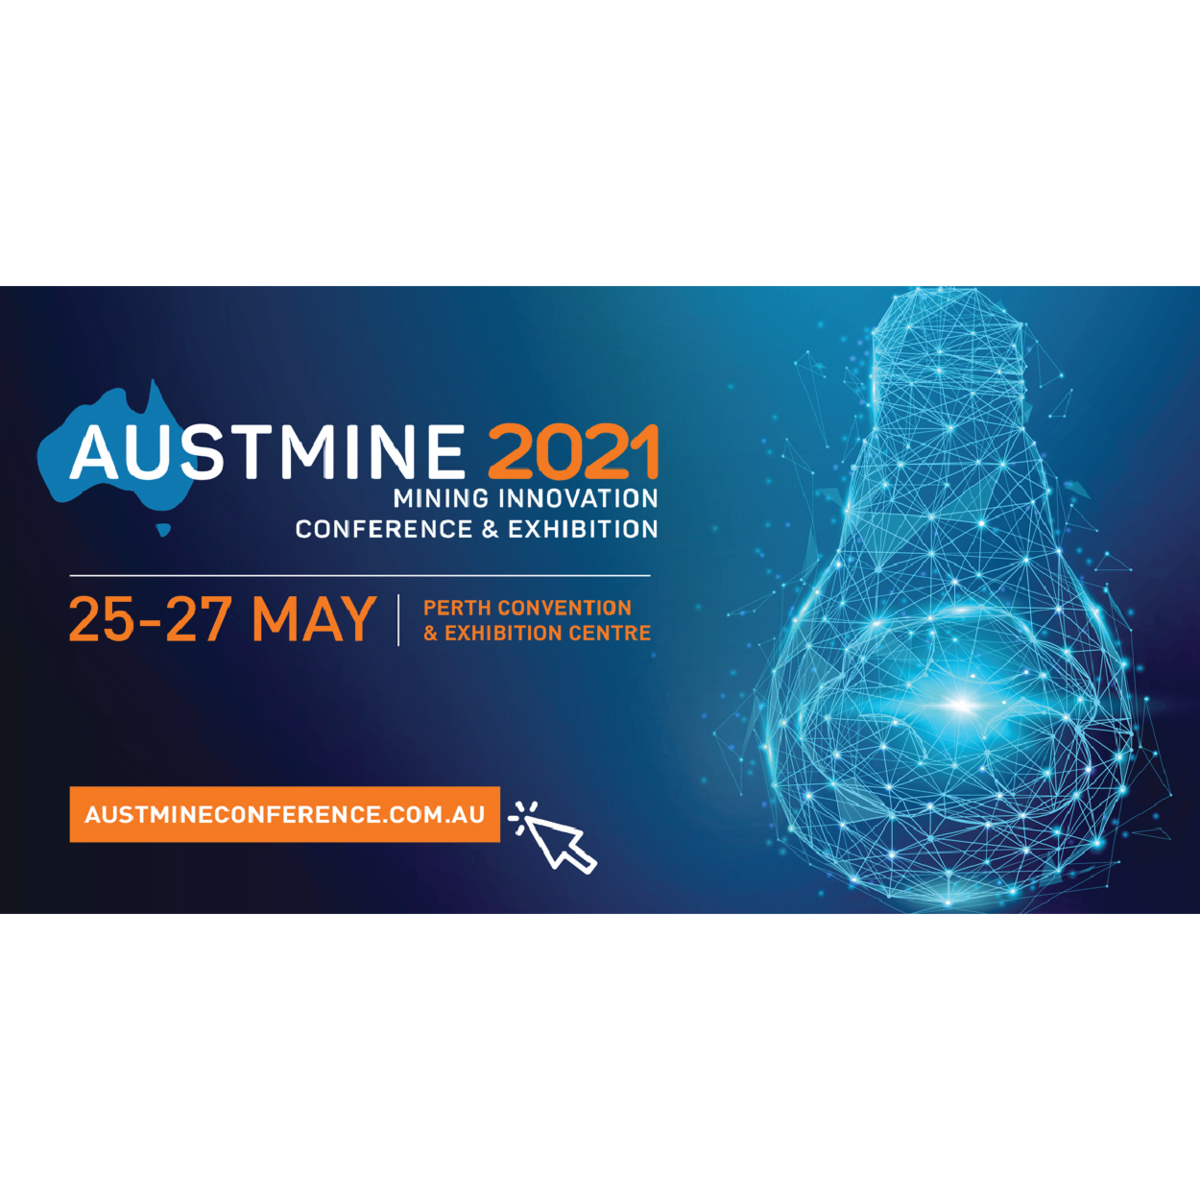 Austmine 2021 Mining Innovation Conference & Exhibition